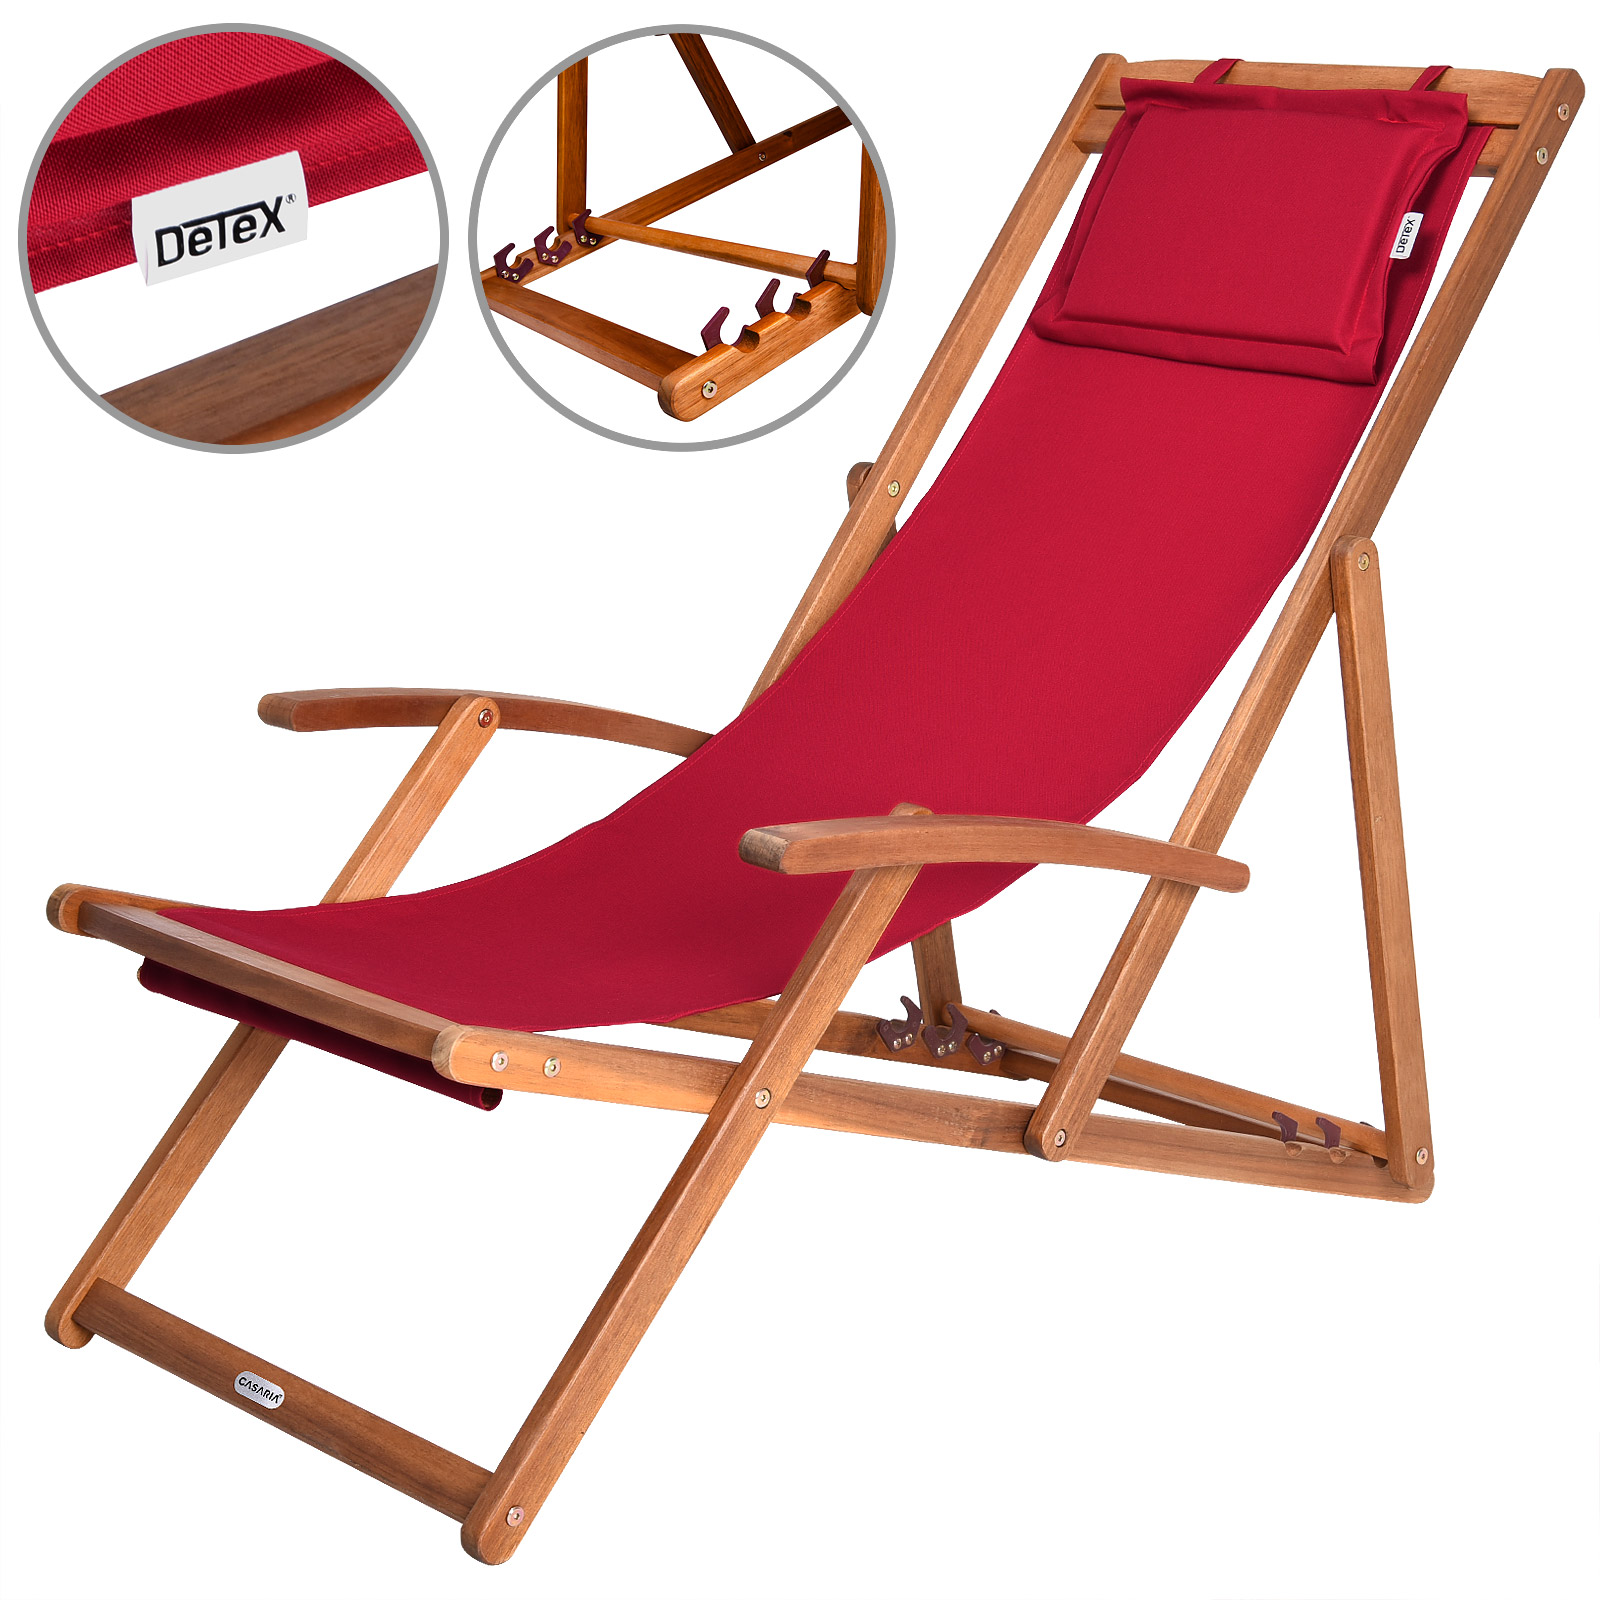 Wooden folding deck chairs garden deckchair furniture